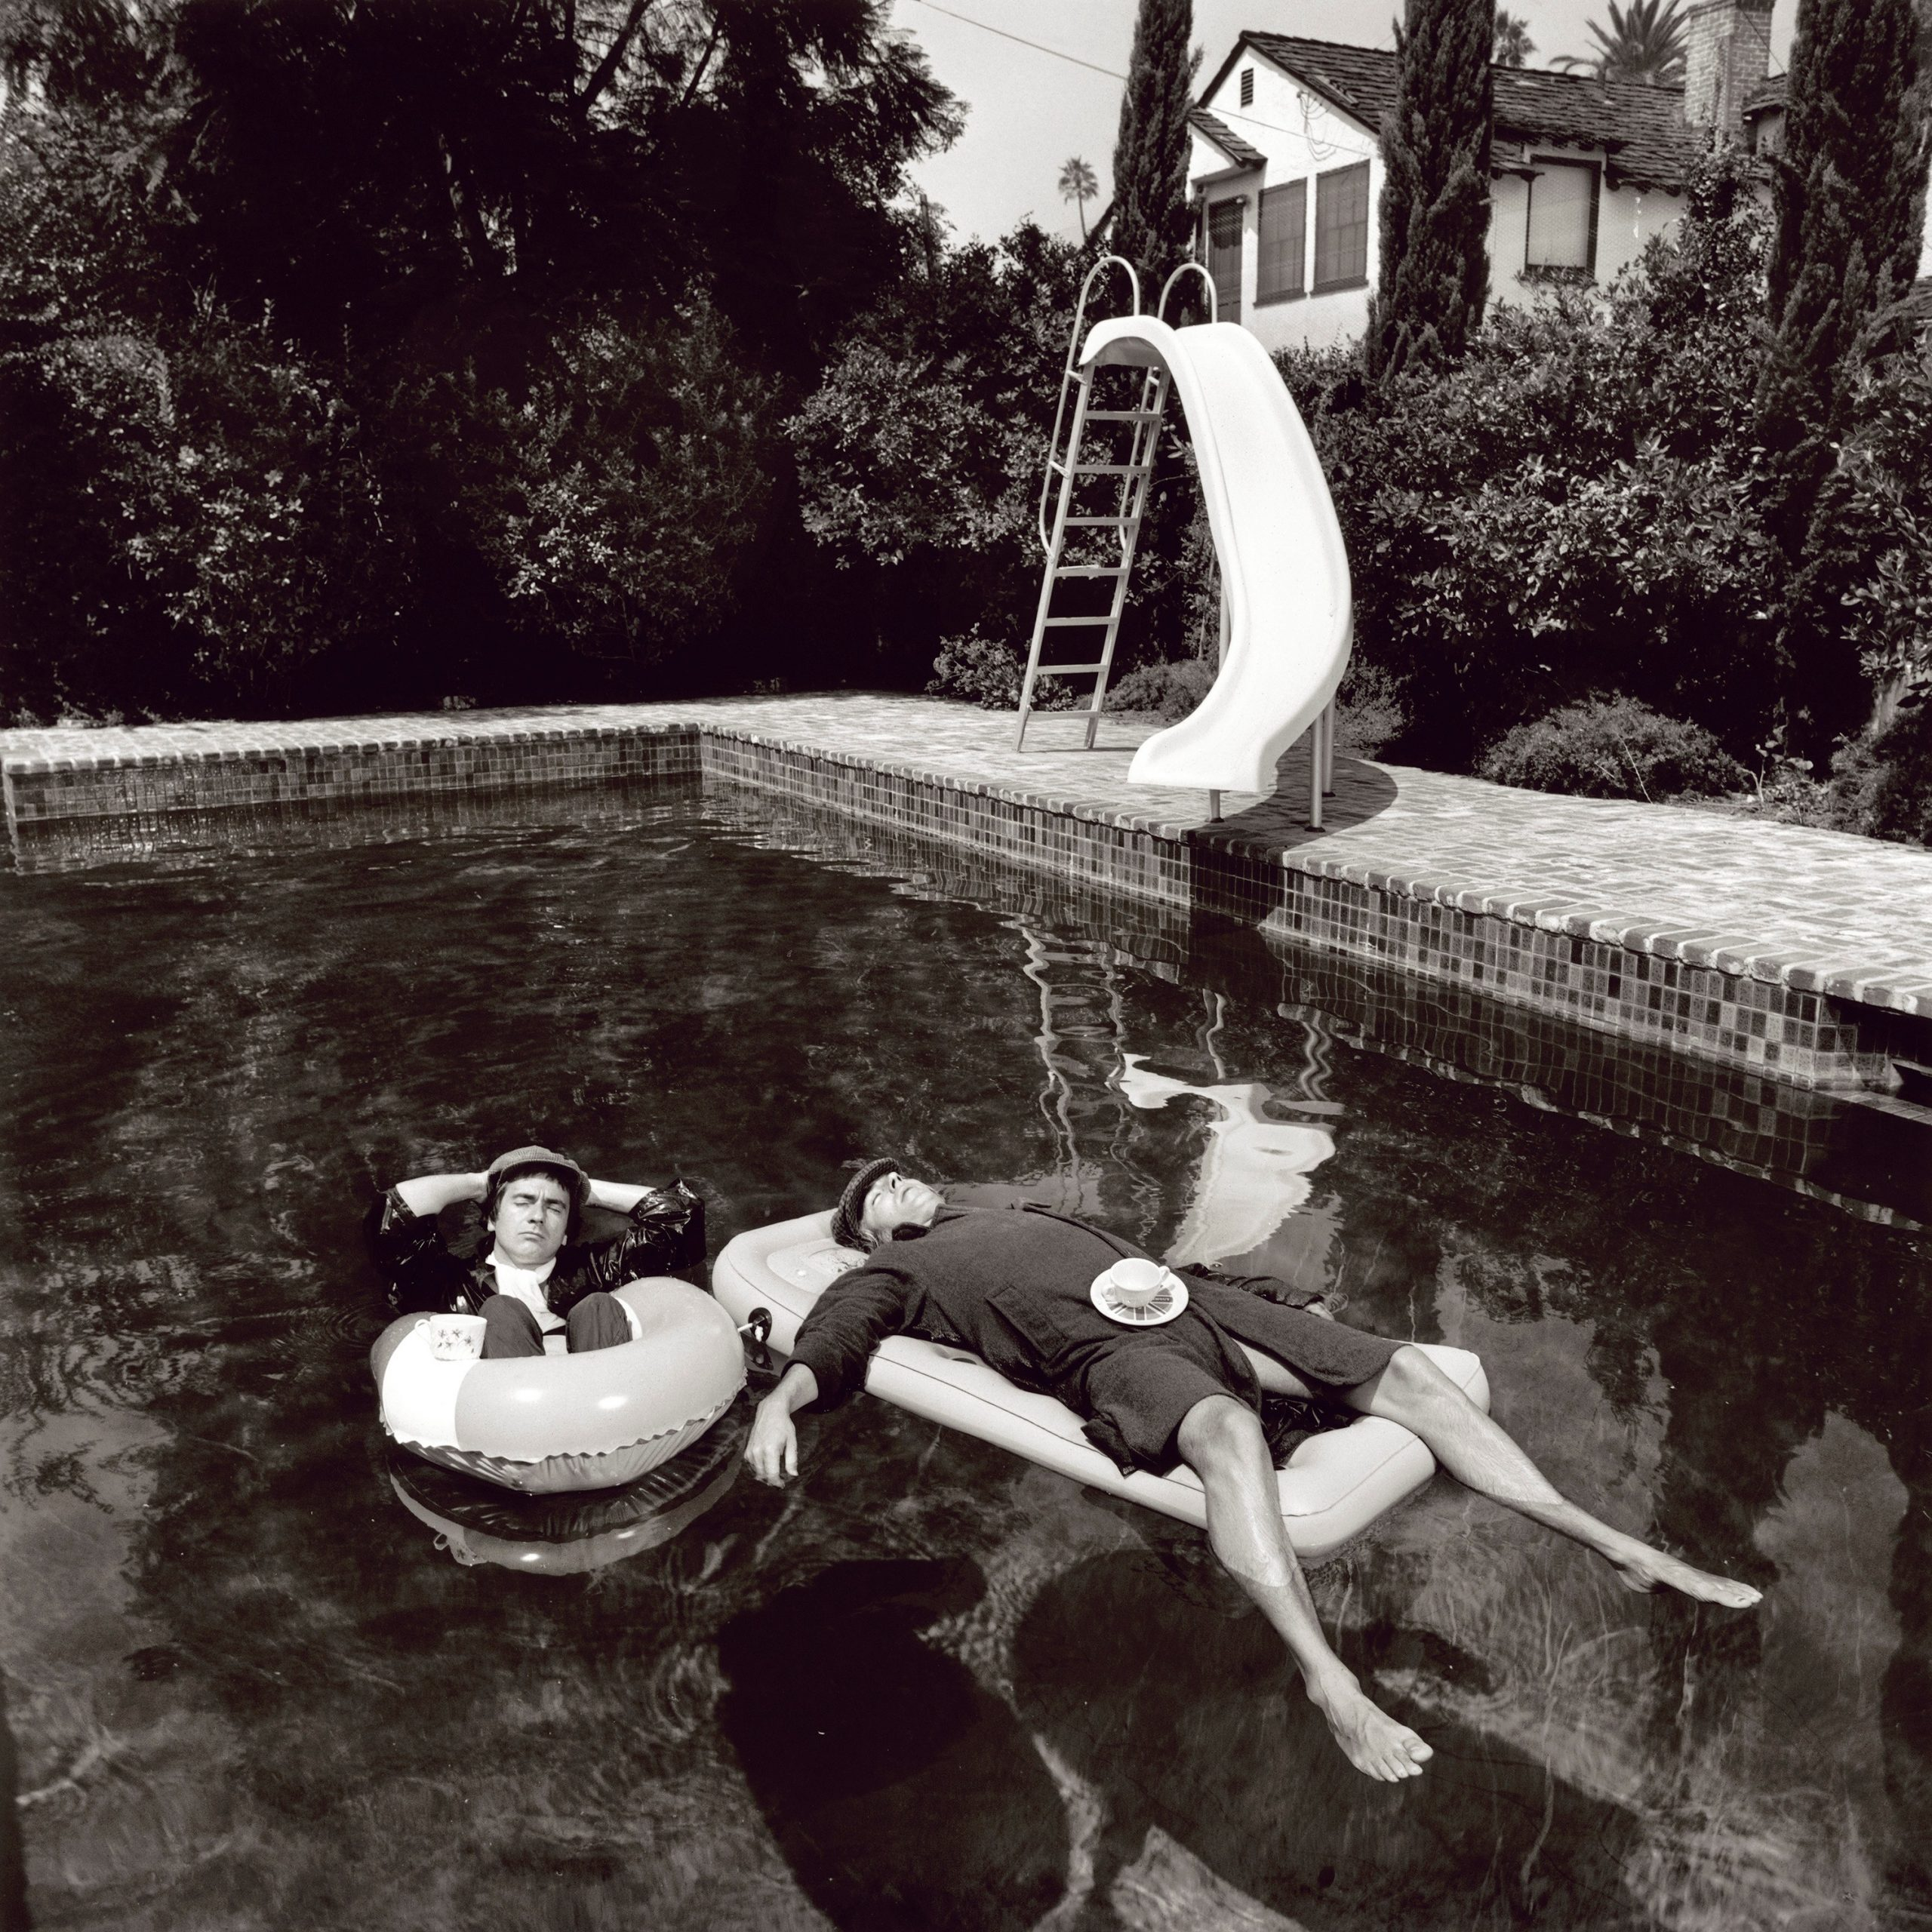 Pete and Dud by Terry O'Neill